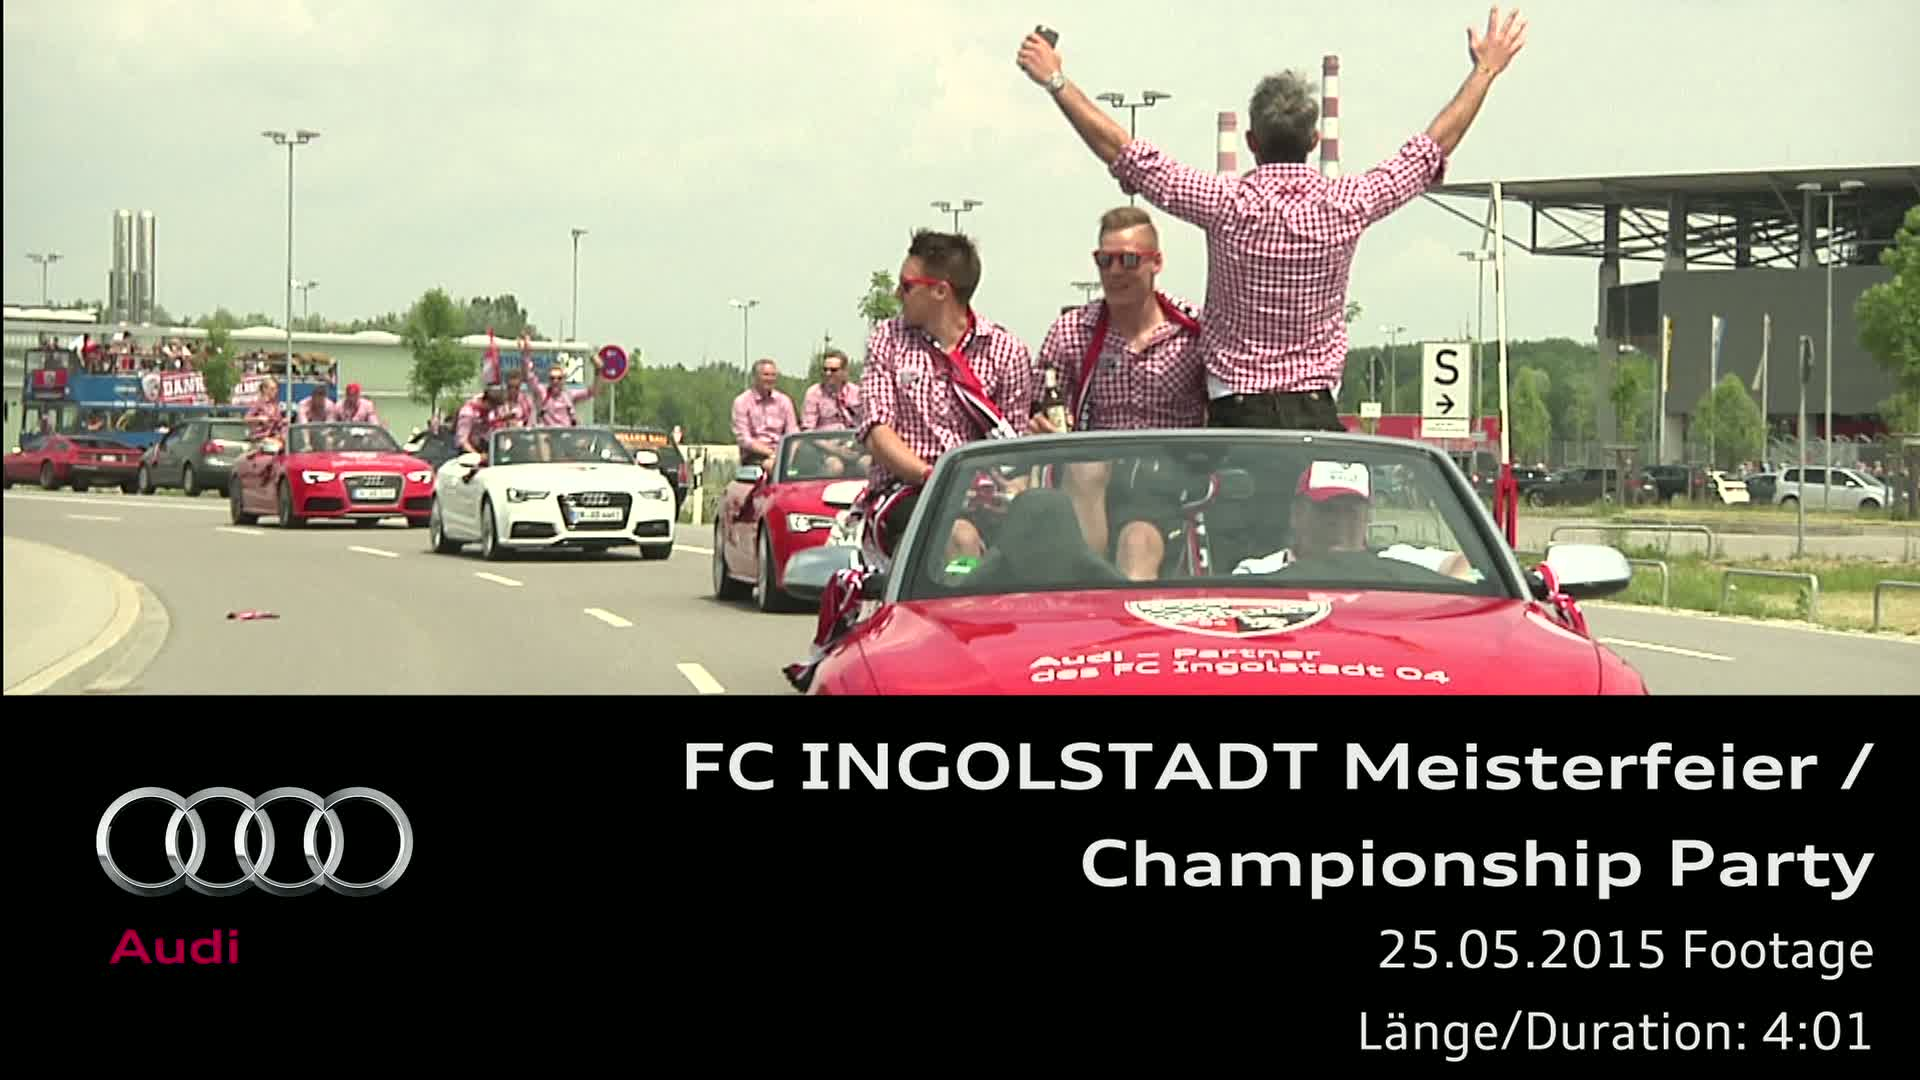 FC Ingolstadt Championship Party - Footage